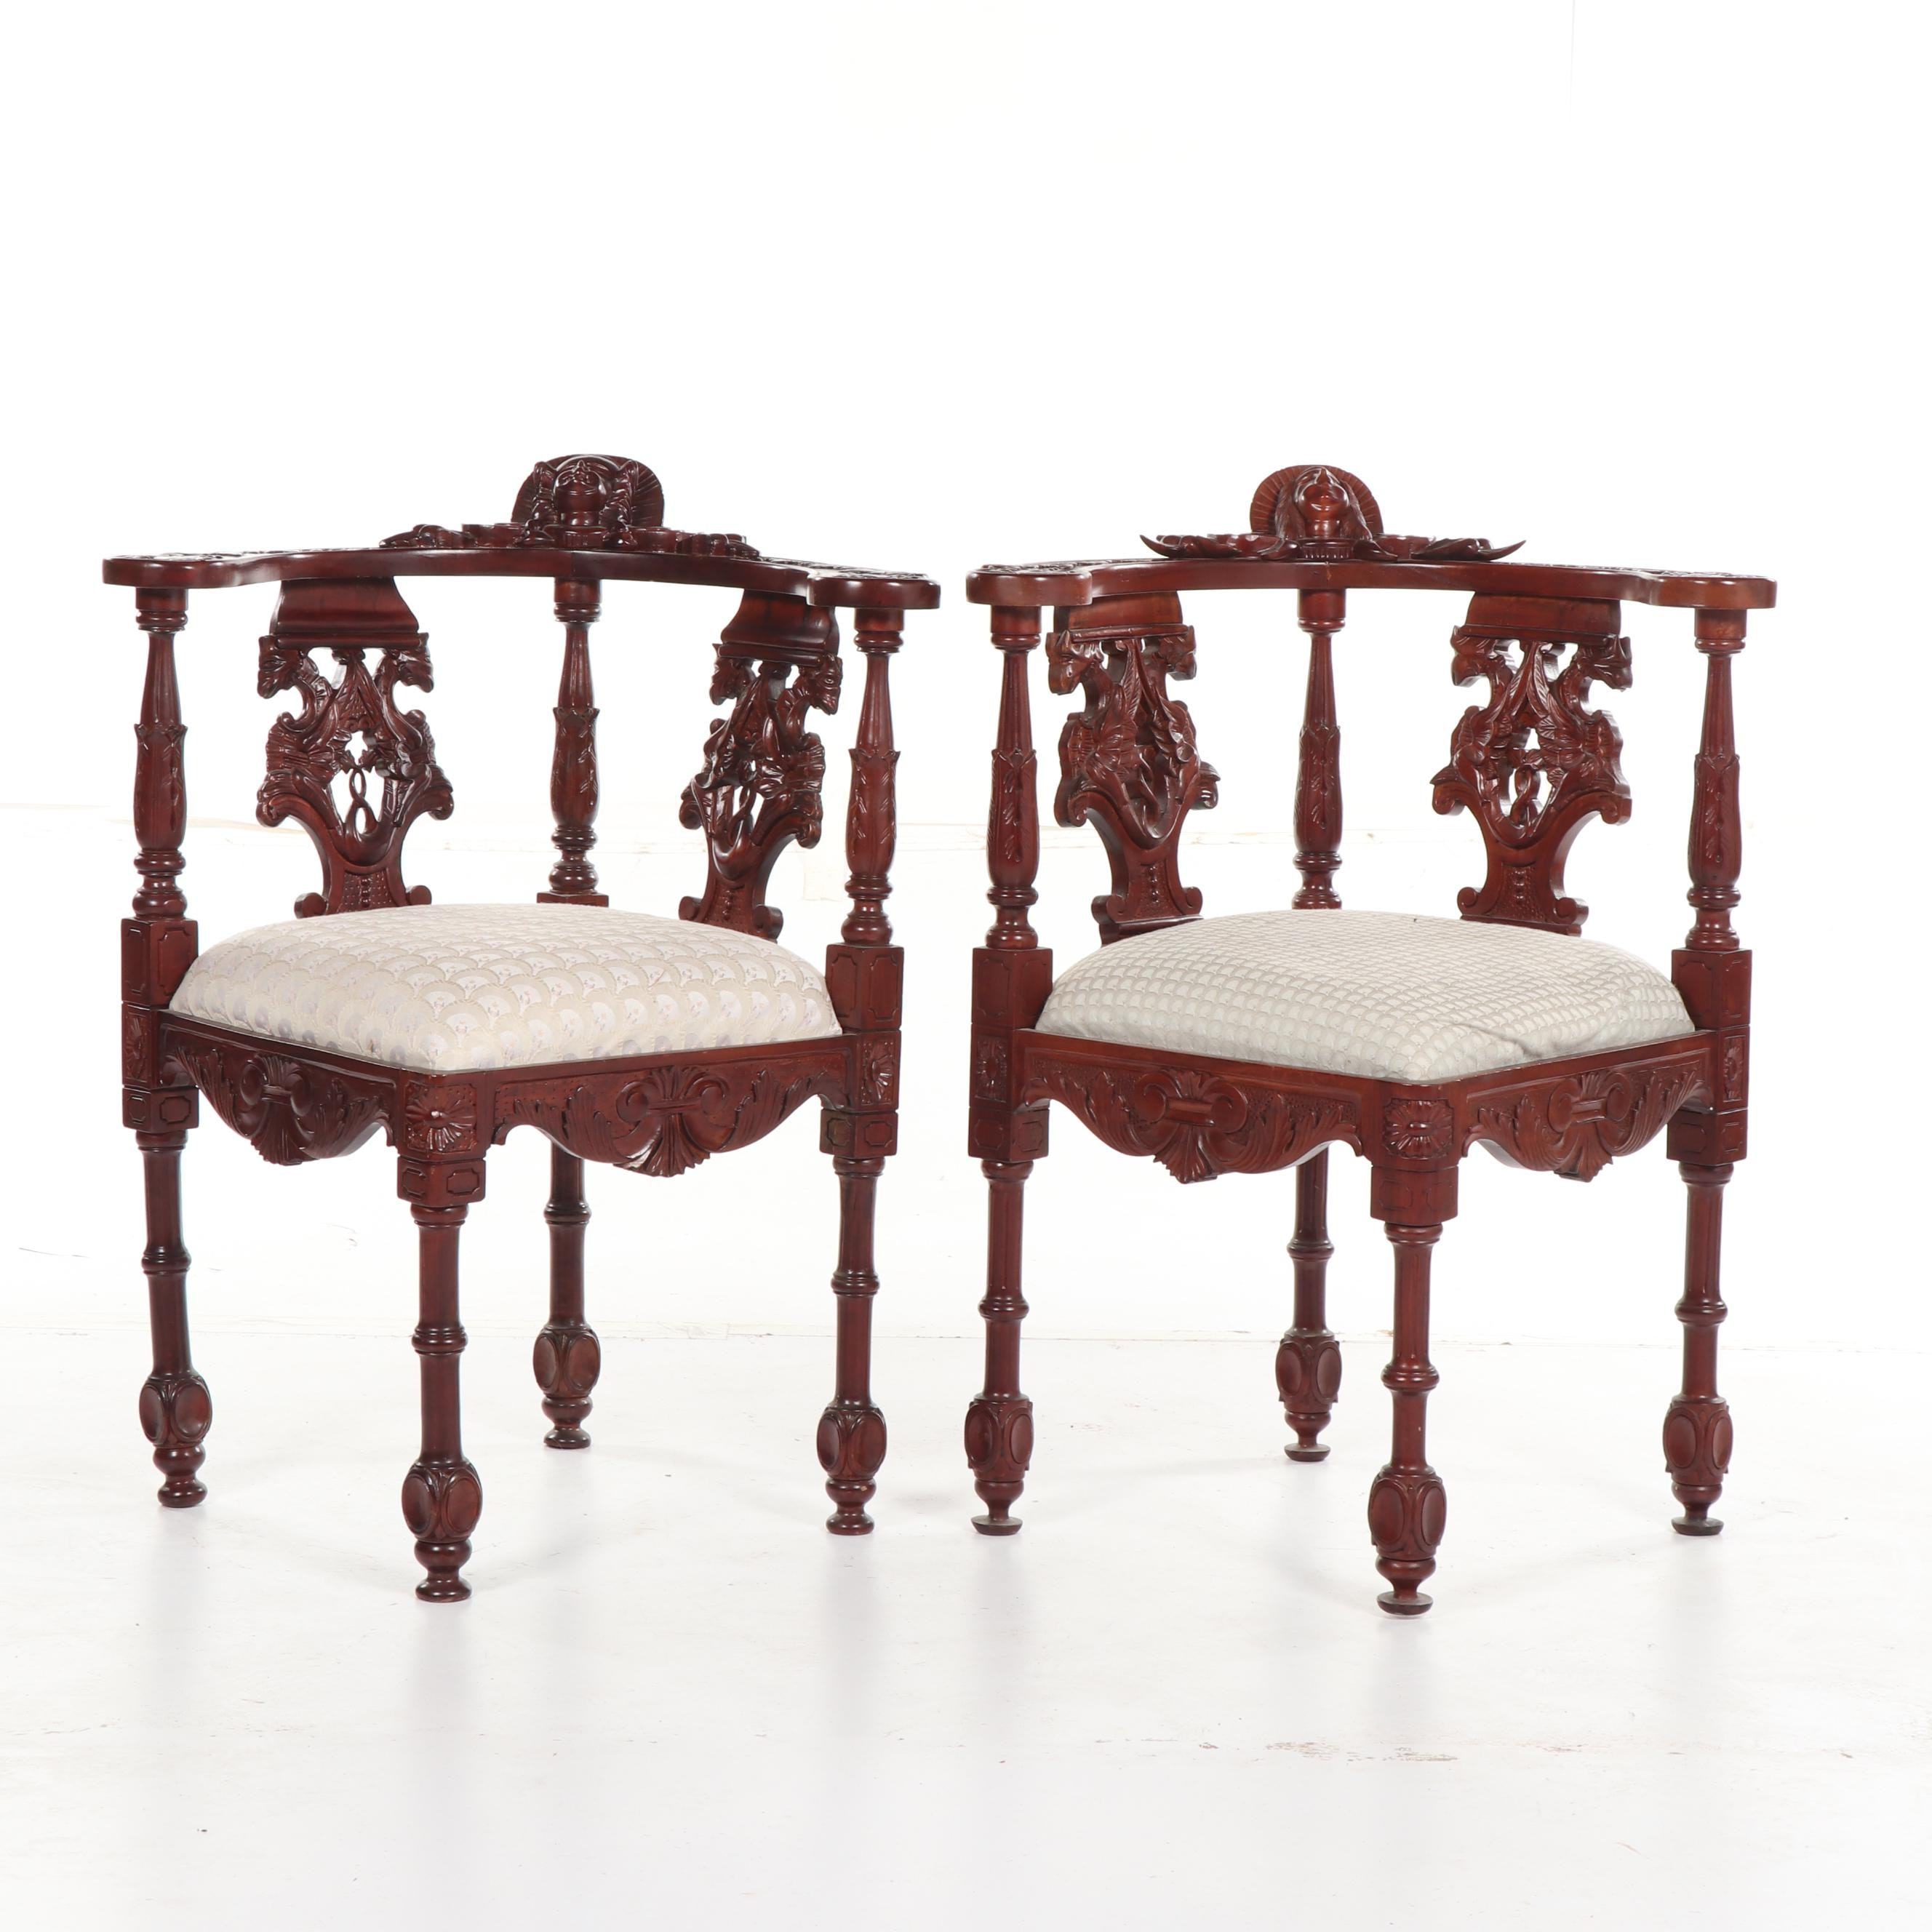 Contemporary Heavily Carved Wood Corner Chairs, 20th Century